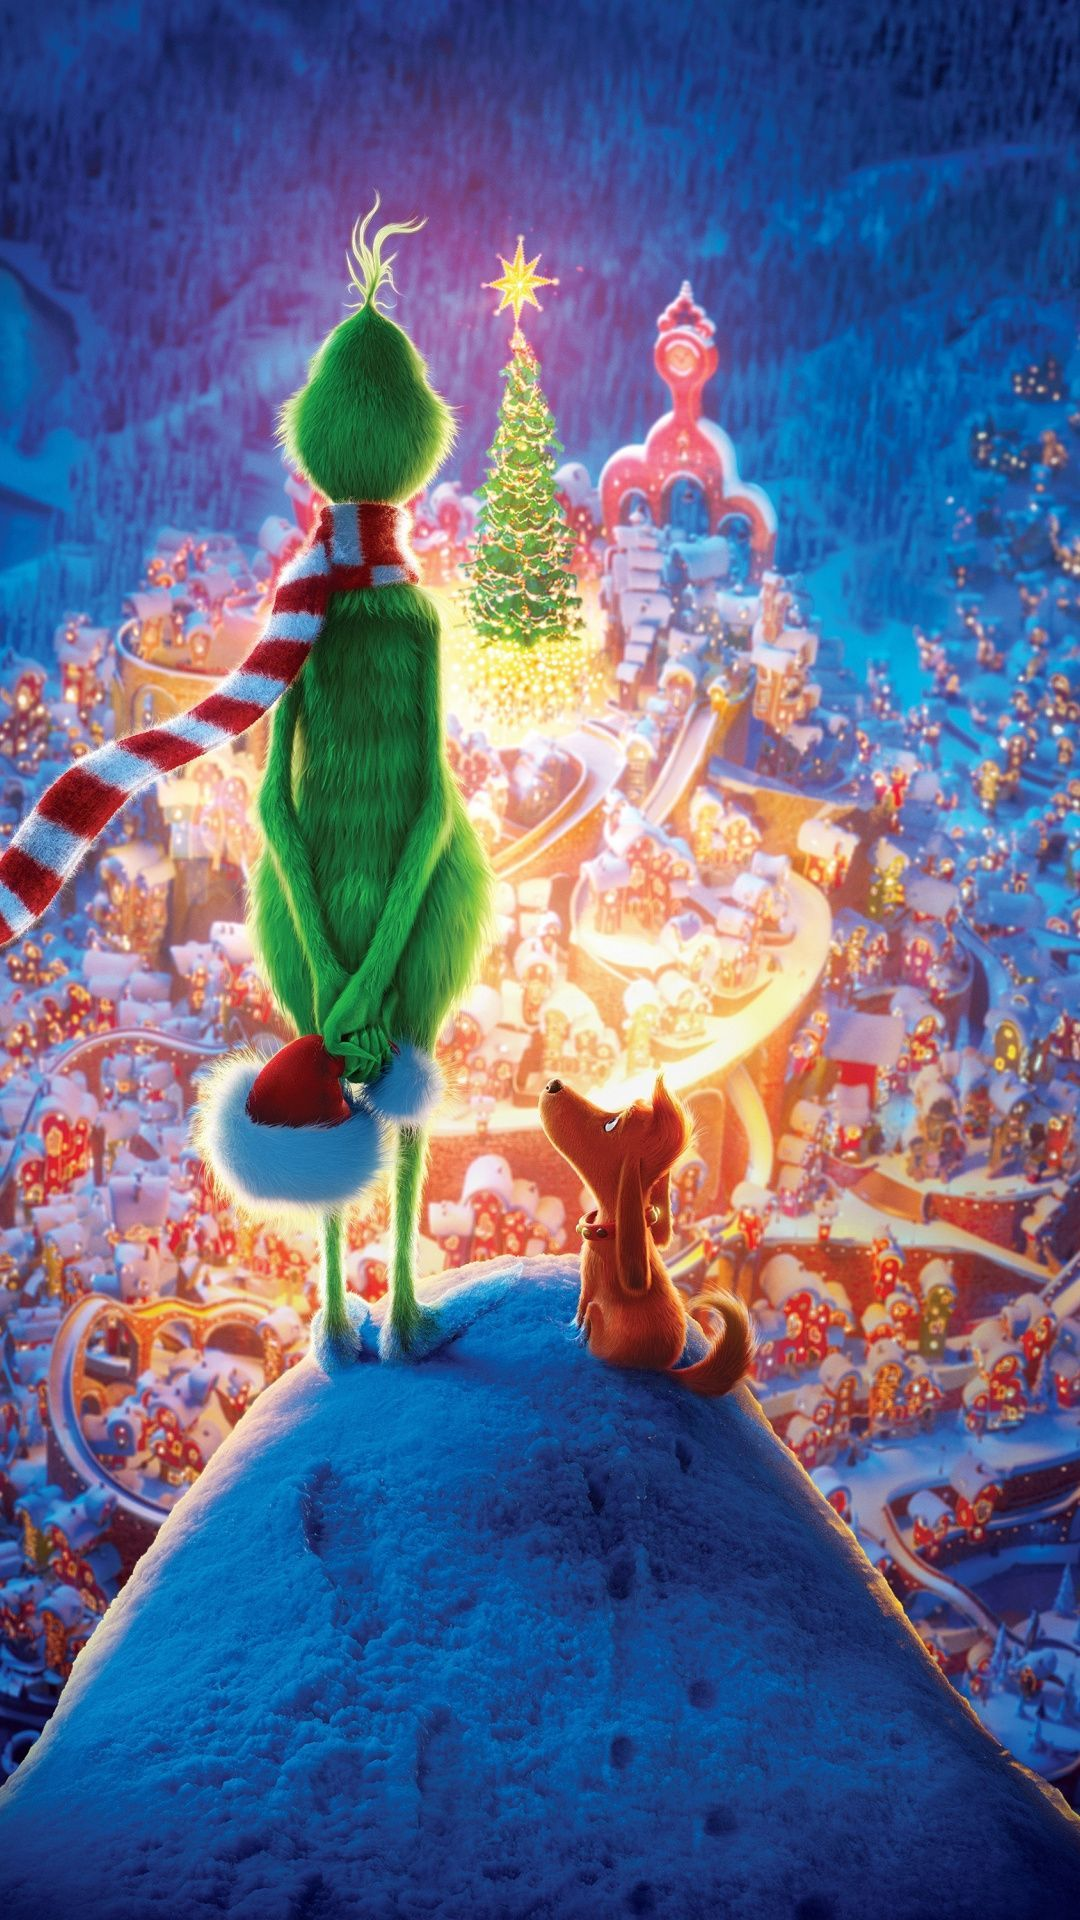 Christmas Movie Wallpapers   Top Christmas Movie Backgrounds 1080x1920